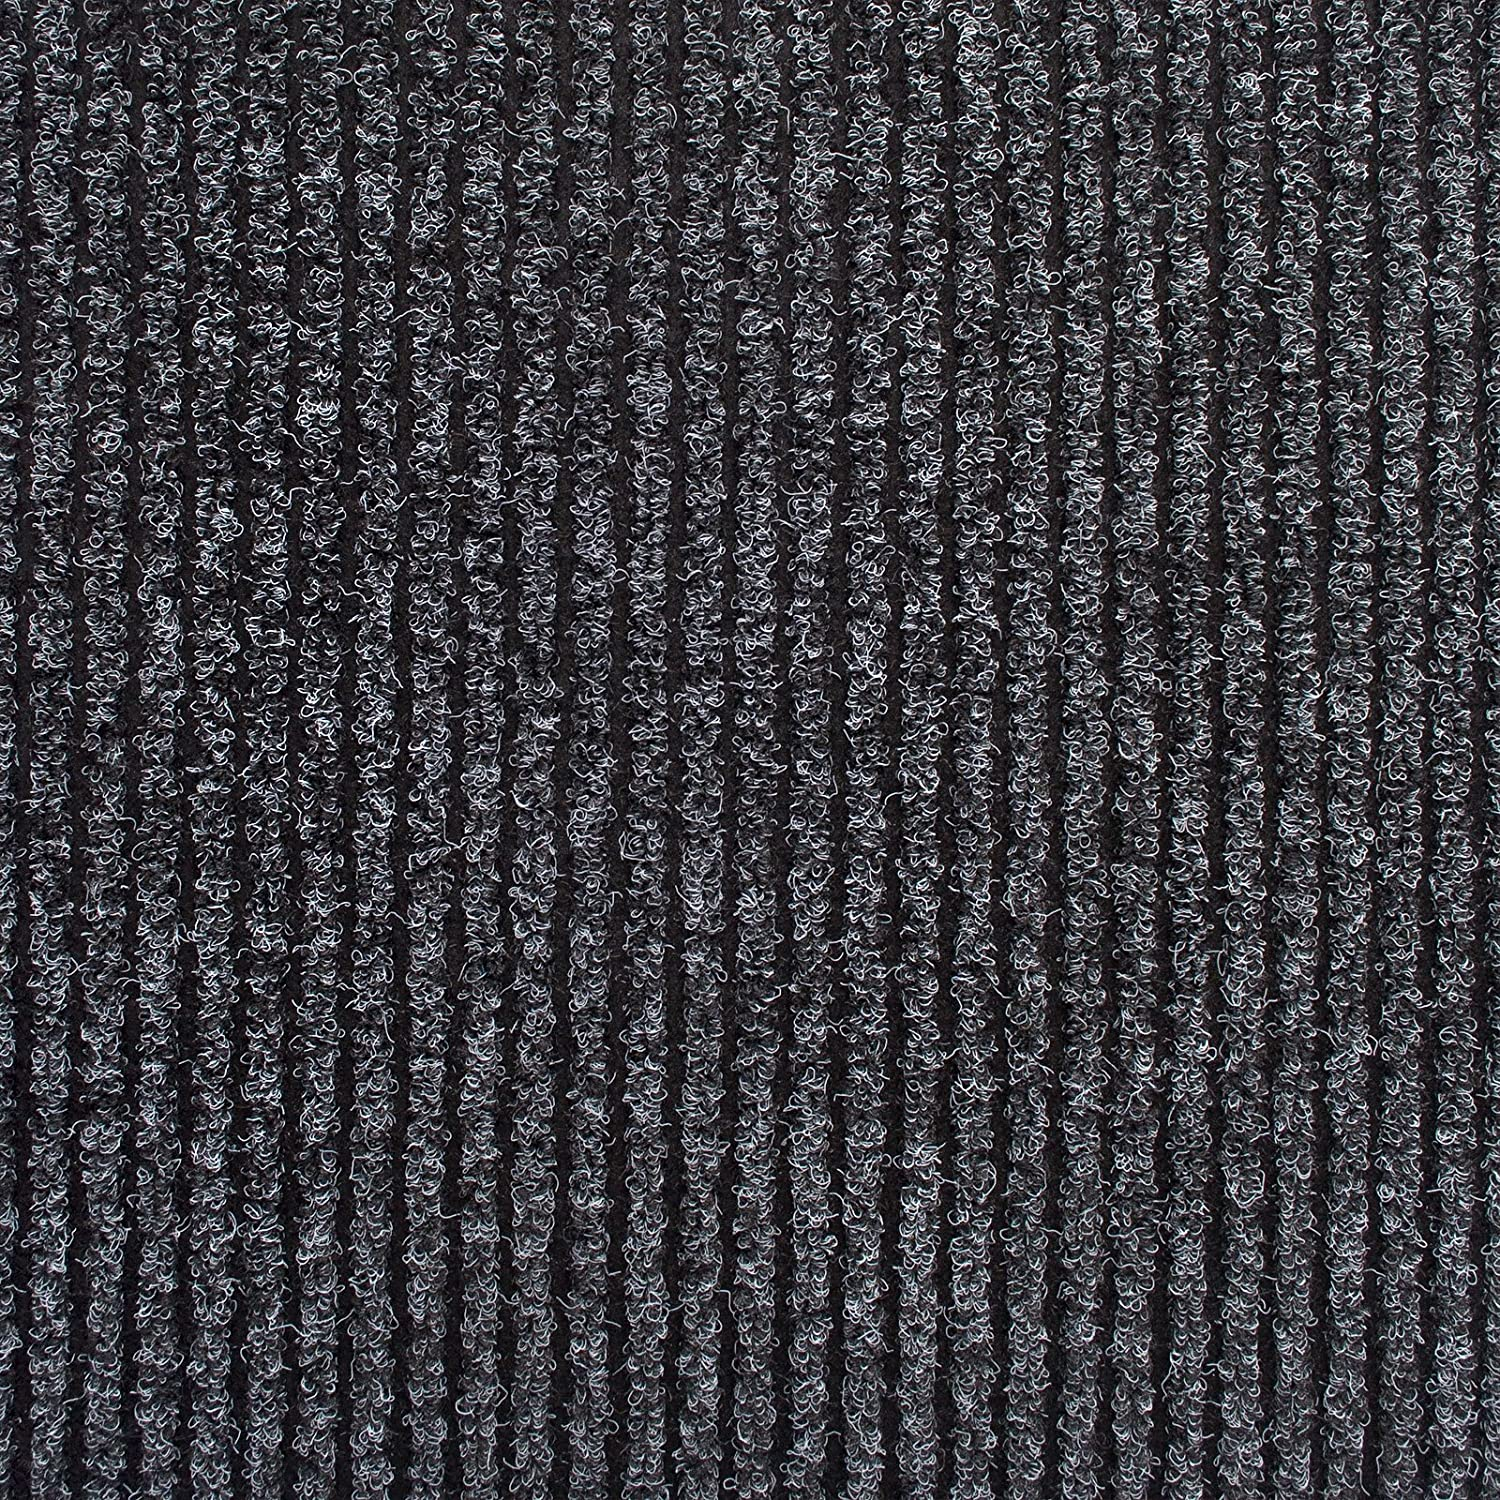 WEST DERBY CARPETS ONLINE LTD - eXtreme CHARCOAL ENTRANCE MATTING - DOORWAY MATTING - RIBBED HEAVY DUTY ENTRANCE MATTING - BARRIER MAT - 5m length x 1m Width eXtreme®